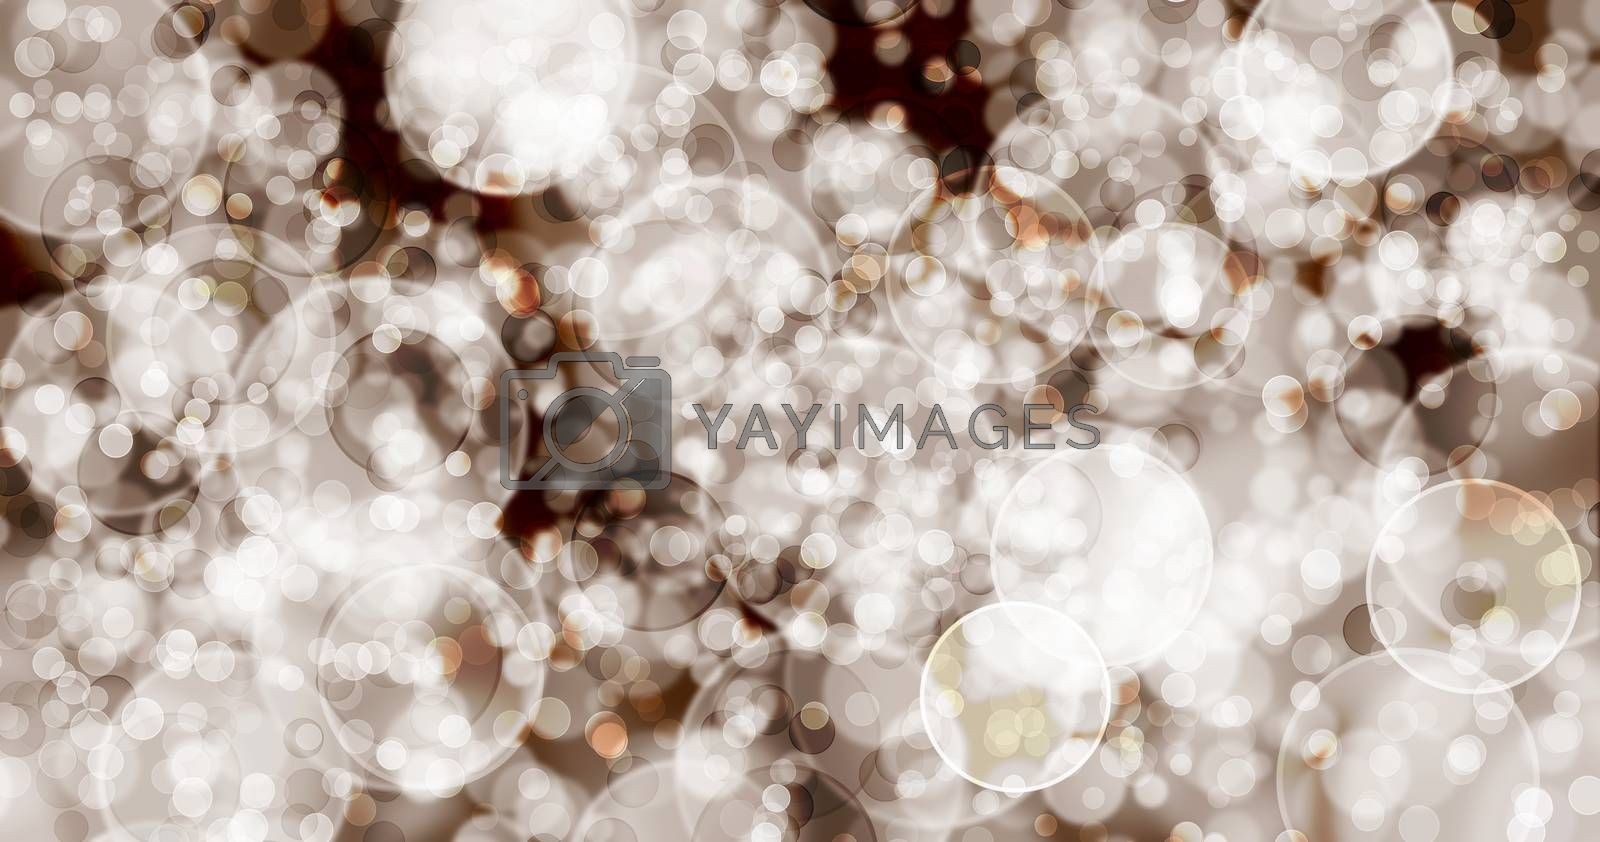 The background has brown bubbles to illuminate. by thitimon